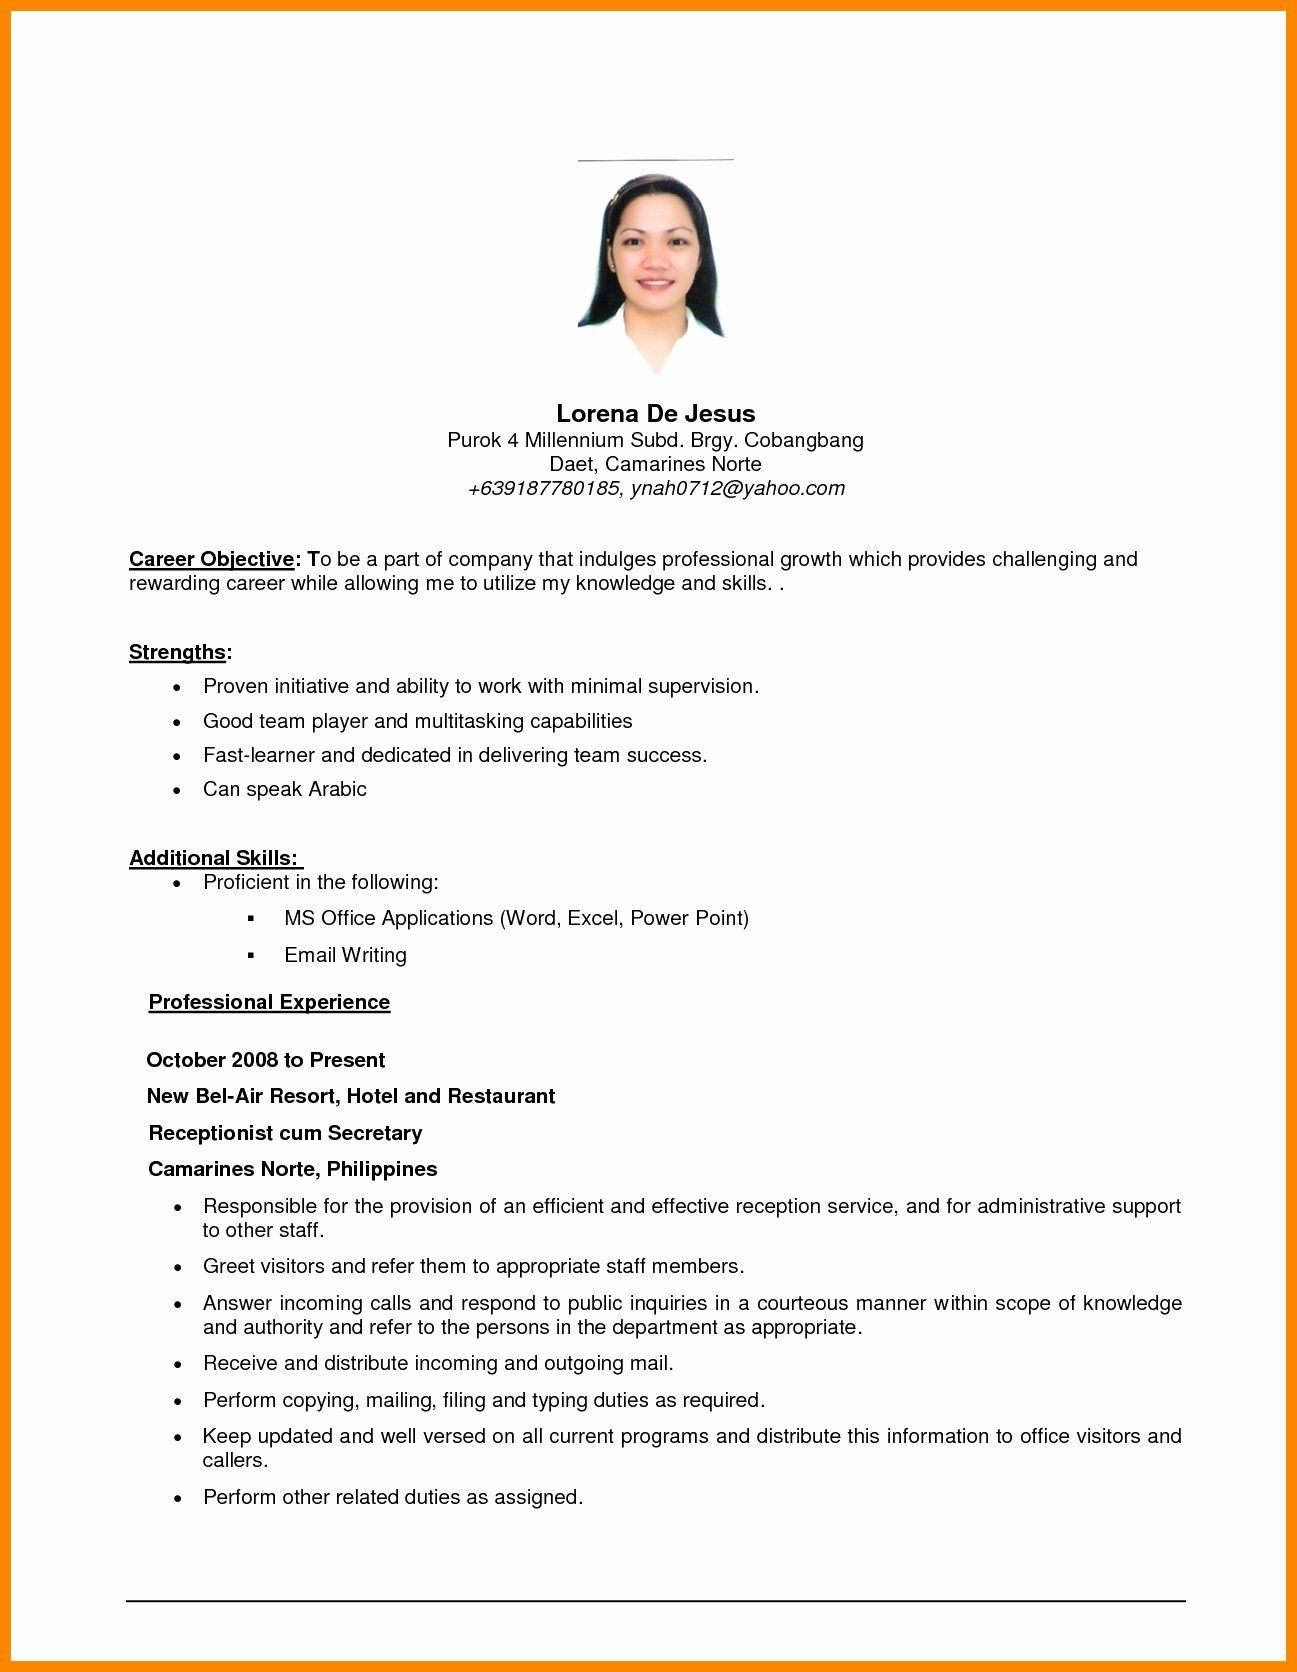 objective in resume career for graduate school sample student ministry patient Resume Career Objective For Resume